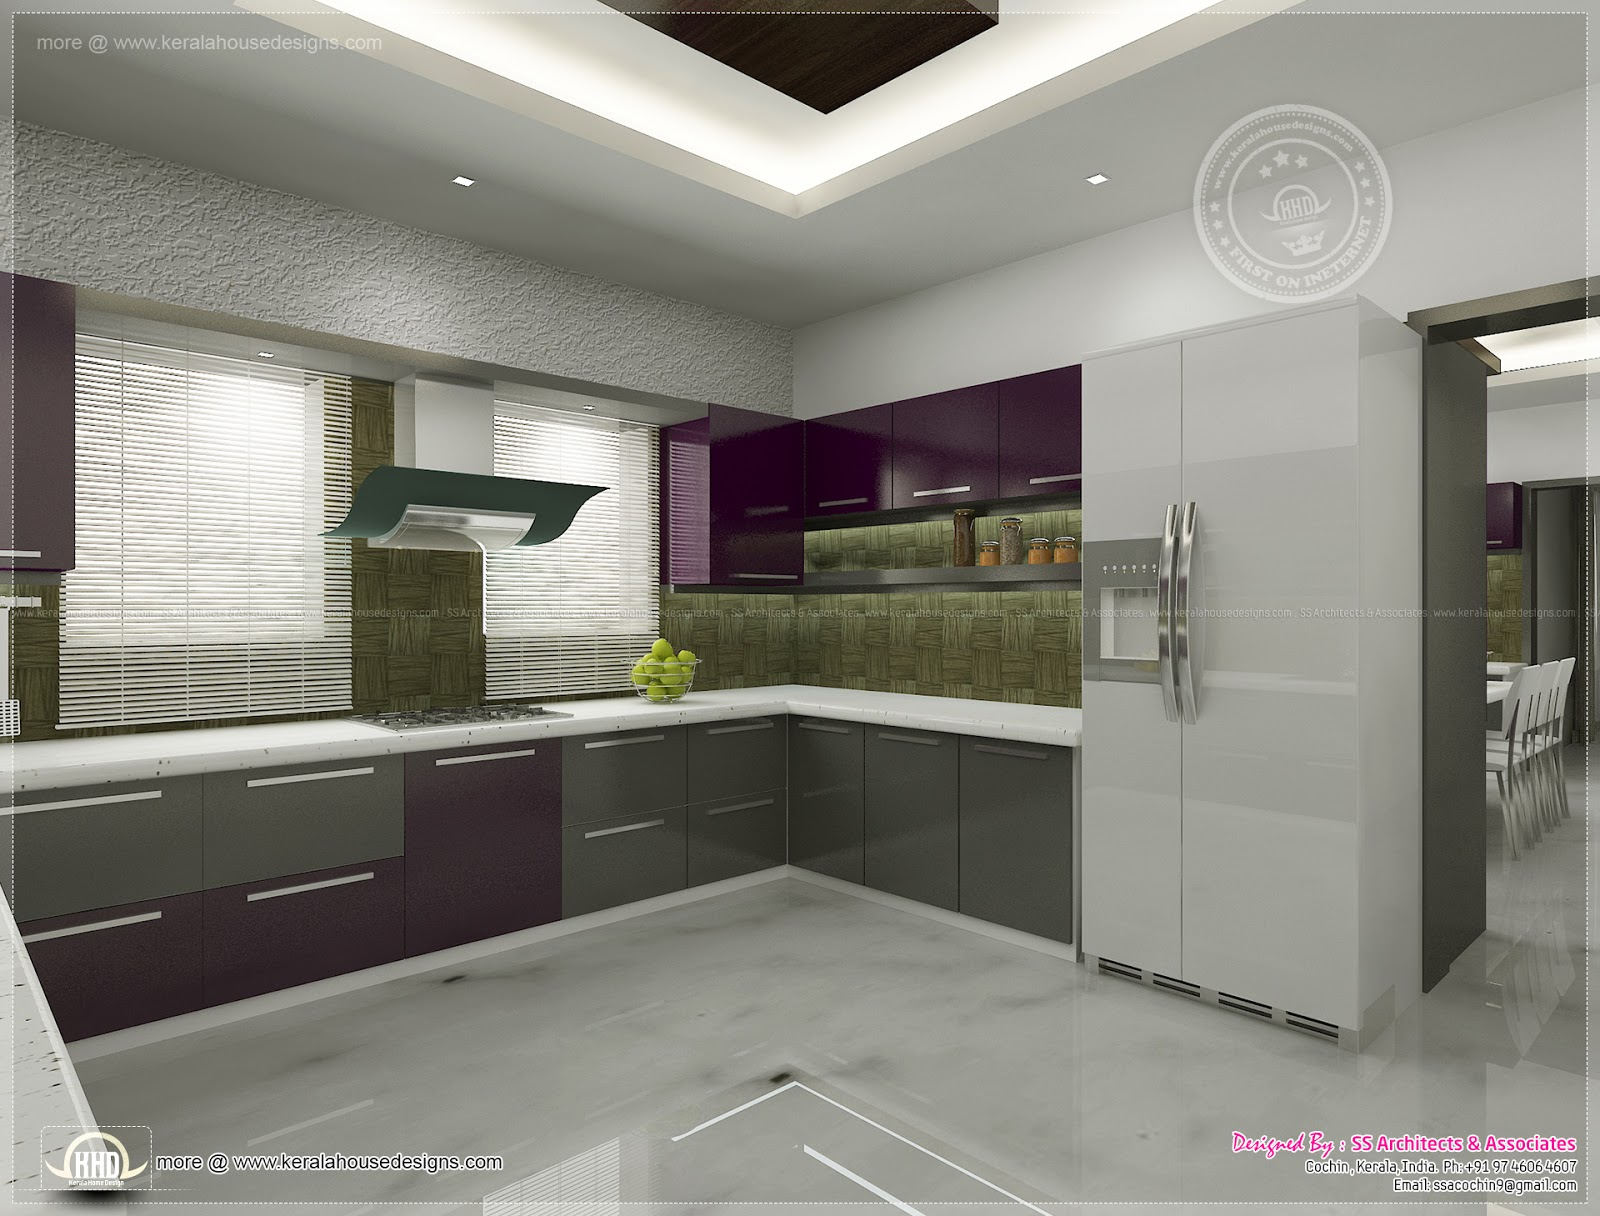 Kitchen interior views by ss architects cochin home for Kitchen interior designs pictures